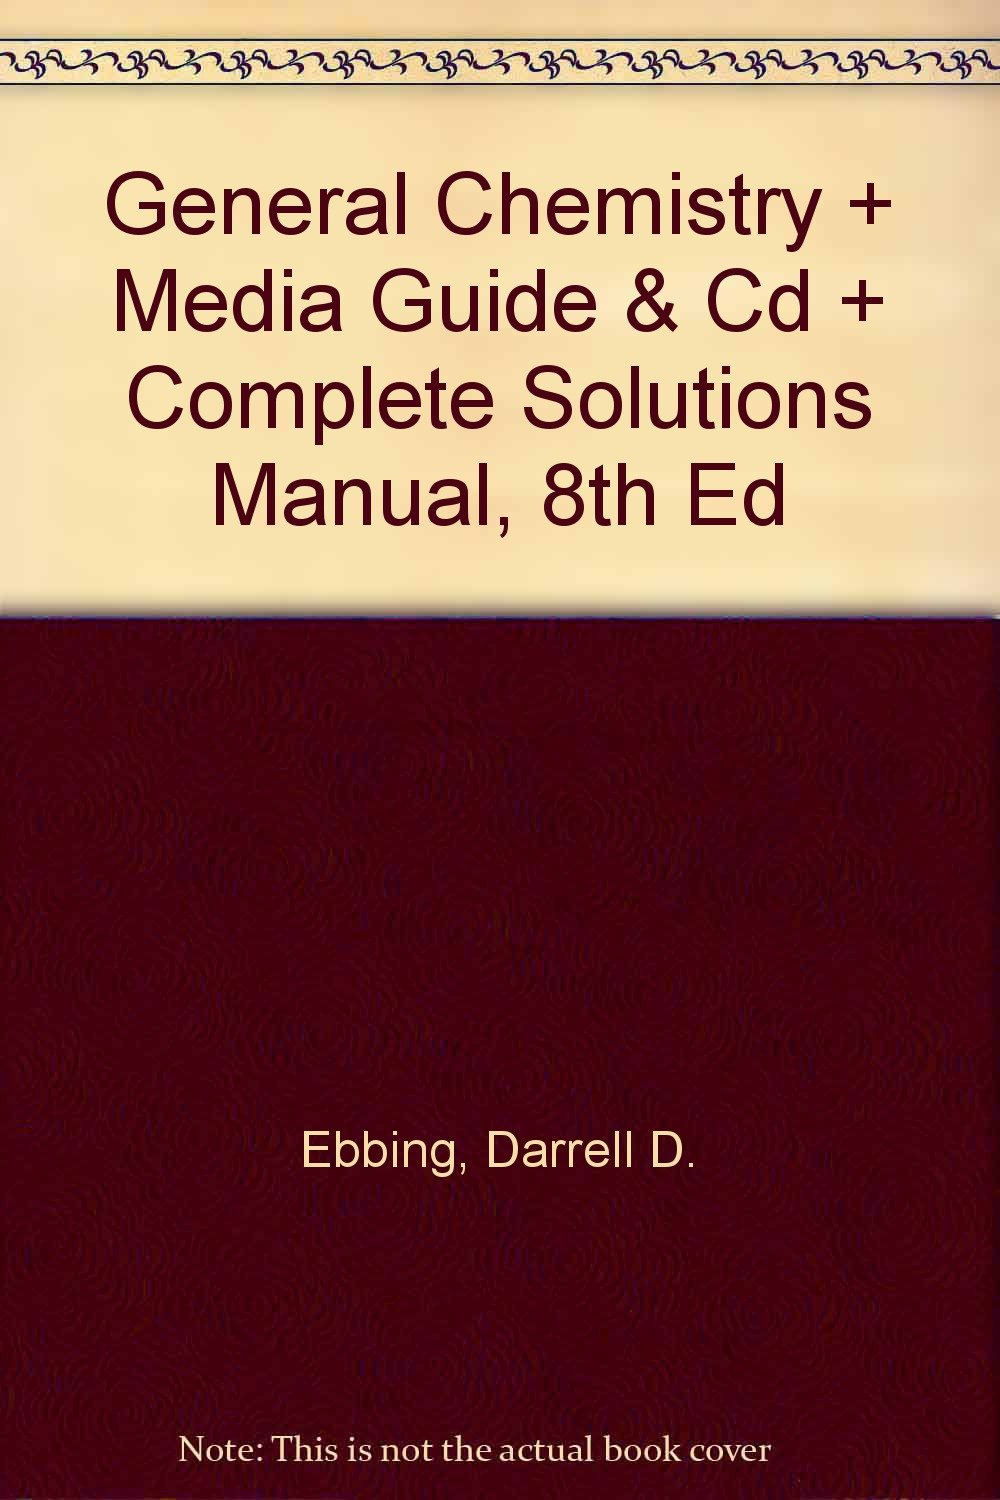 General Chemistry + Media Guide & Cd + Complete Solutions Manual, 8th Ed:  Darrell D. Ebbing: 9780618564699: Amazon.com: Books